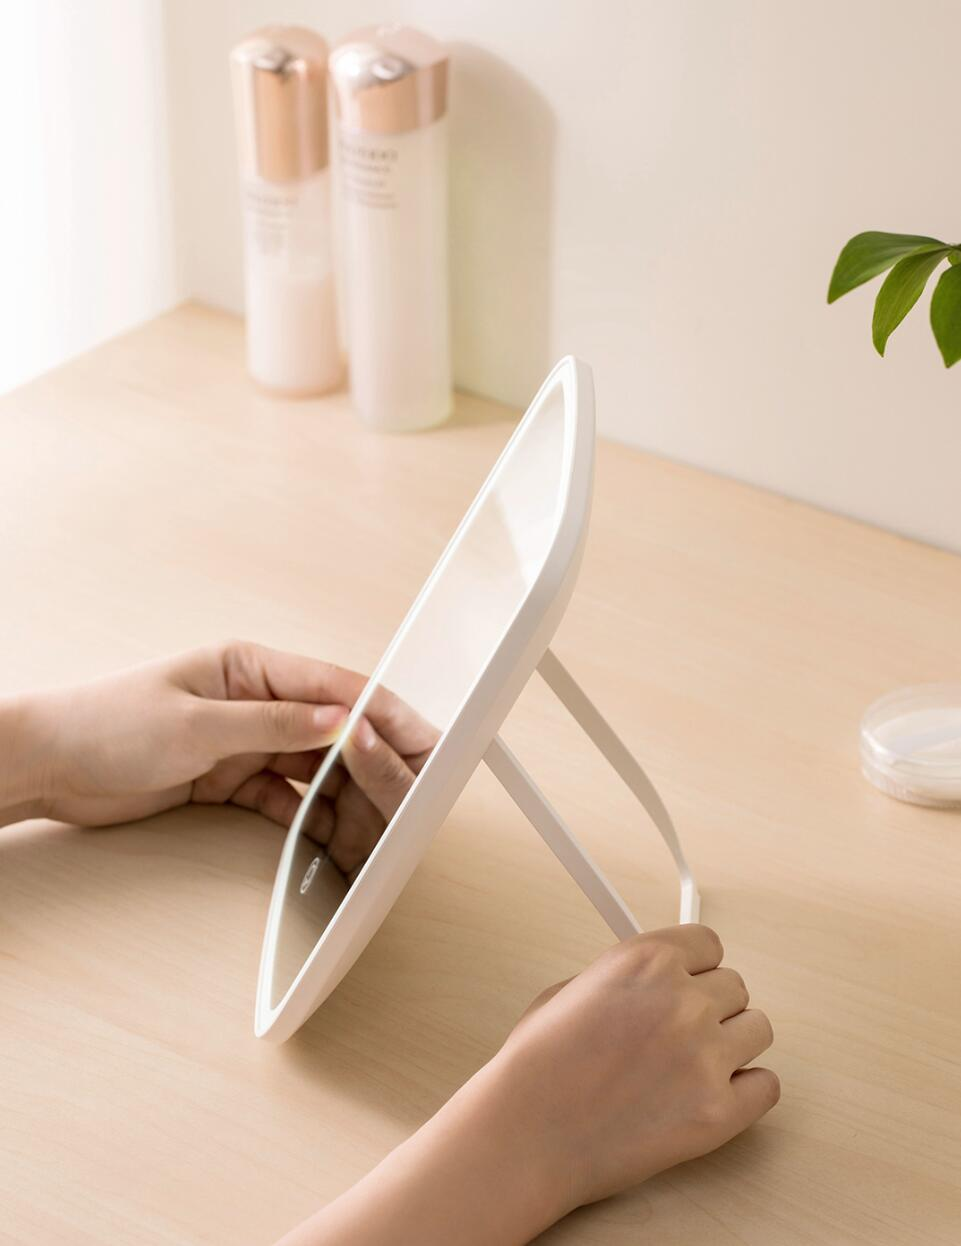 Xiaomi Mijia LED makeup mirror Touch-sensitive control LED natural light fill adjustable angle Brightness lights long battery li (7)